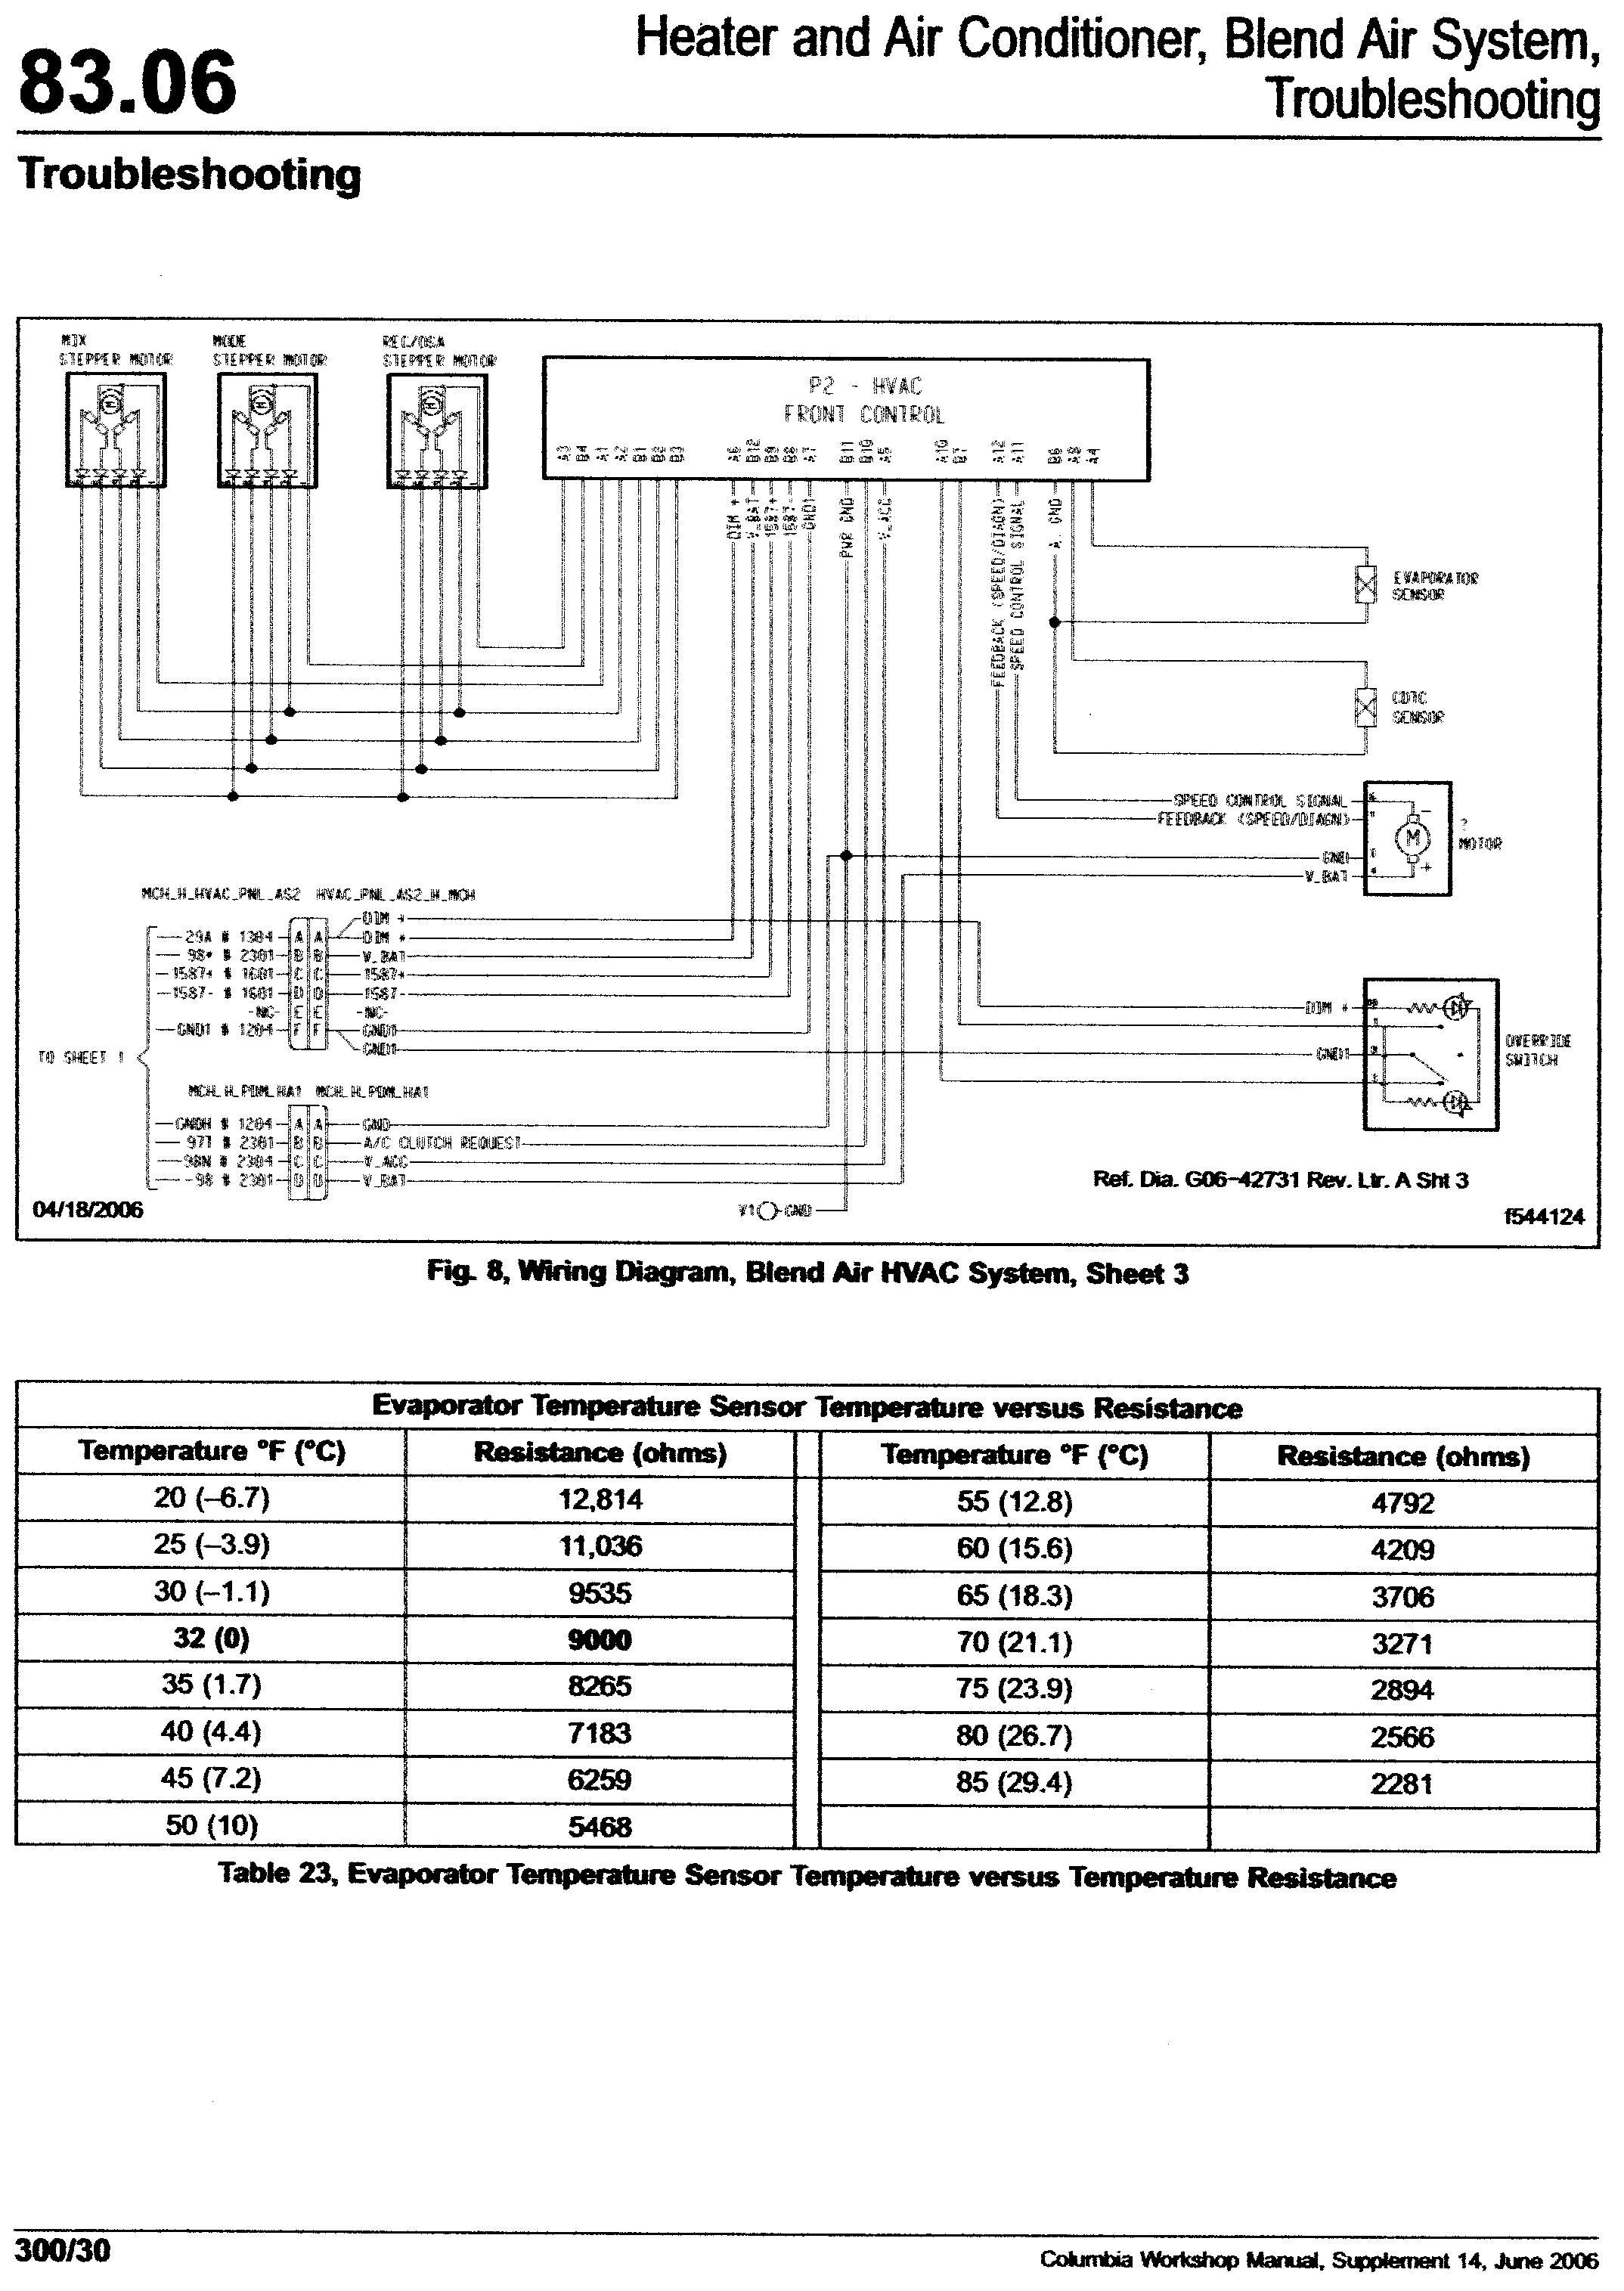 freightliner columbia wiring schematic | free wiring diagram freightliner wiring diagrams for 06